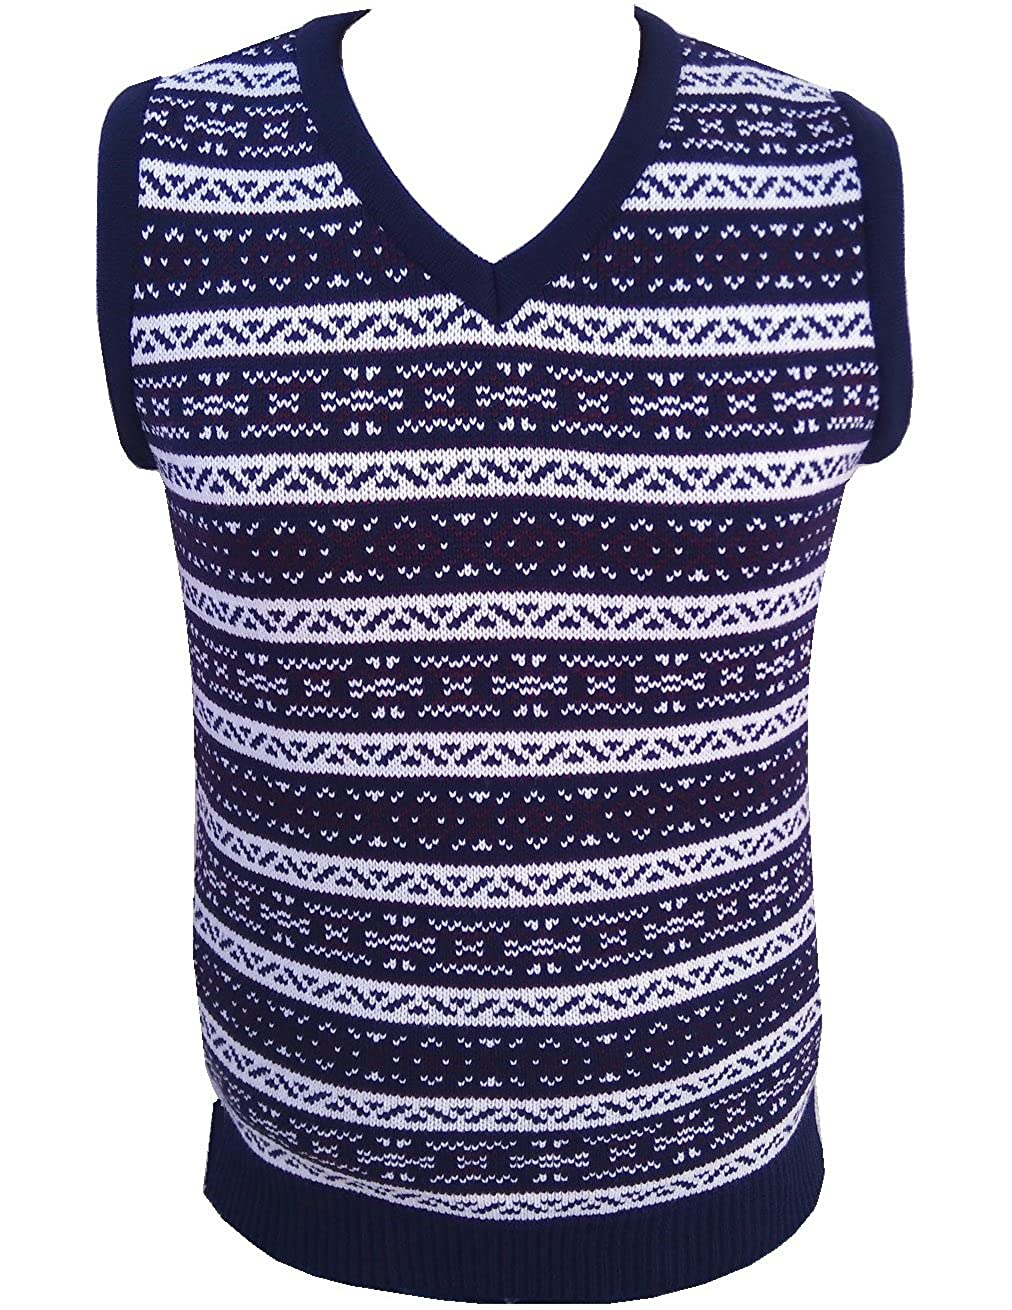 1920s Mens Sweaters, Pullovers, Cardigans London Knitwear Gallery Aztec Retro Vintage Knitwear Tanktop Sleeveless Golf Sweater �18.99 AT vintagedancer.com